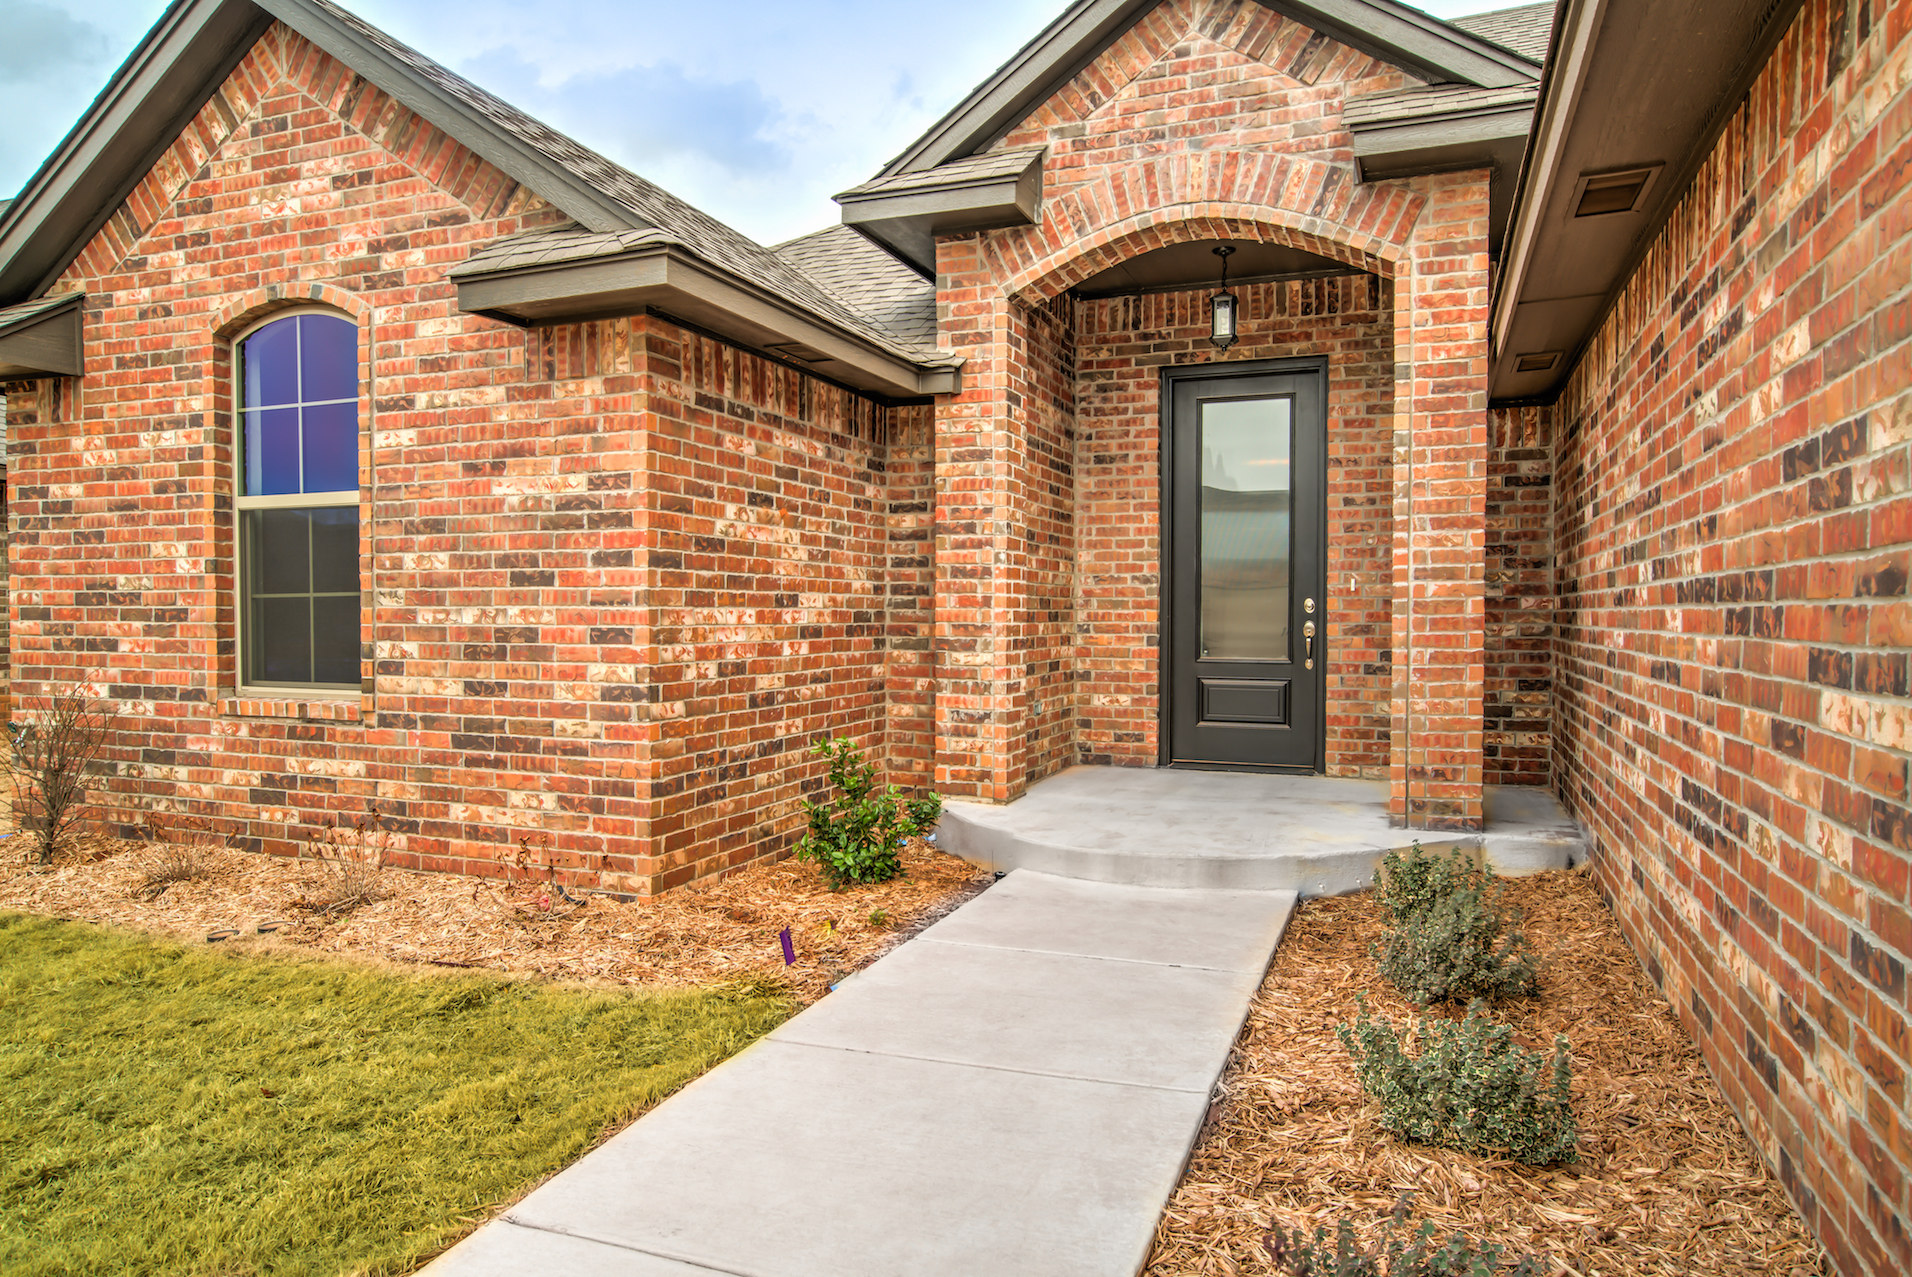 New Home Construction in Tuttle and the Surrounding Oklahoma City